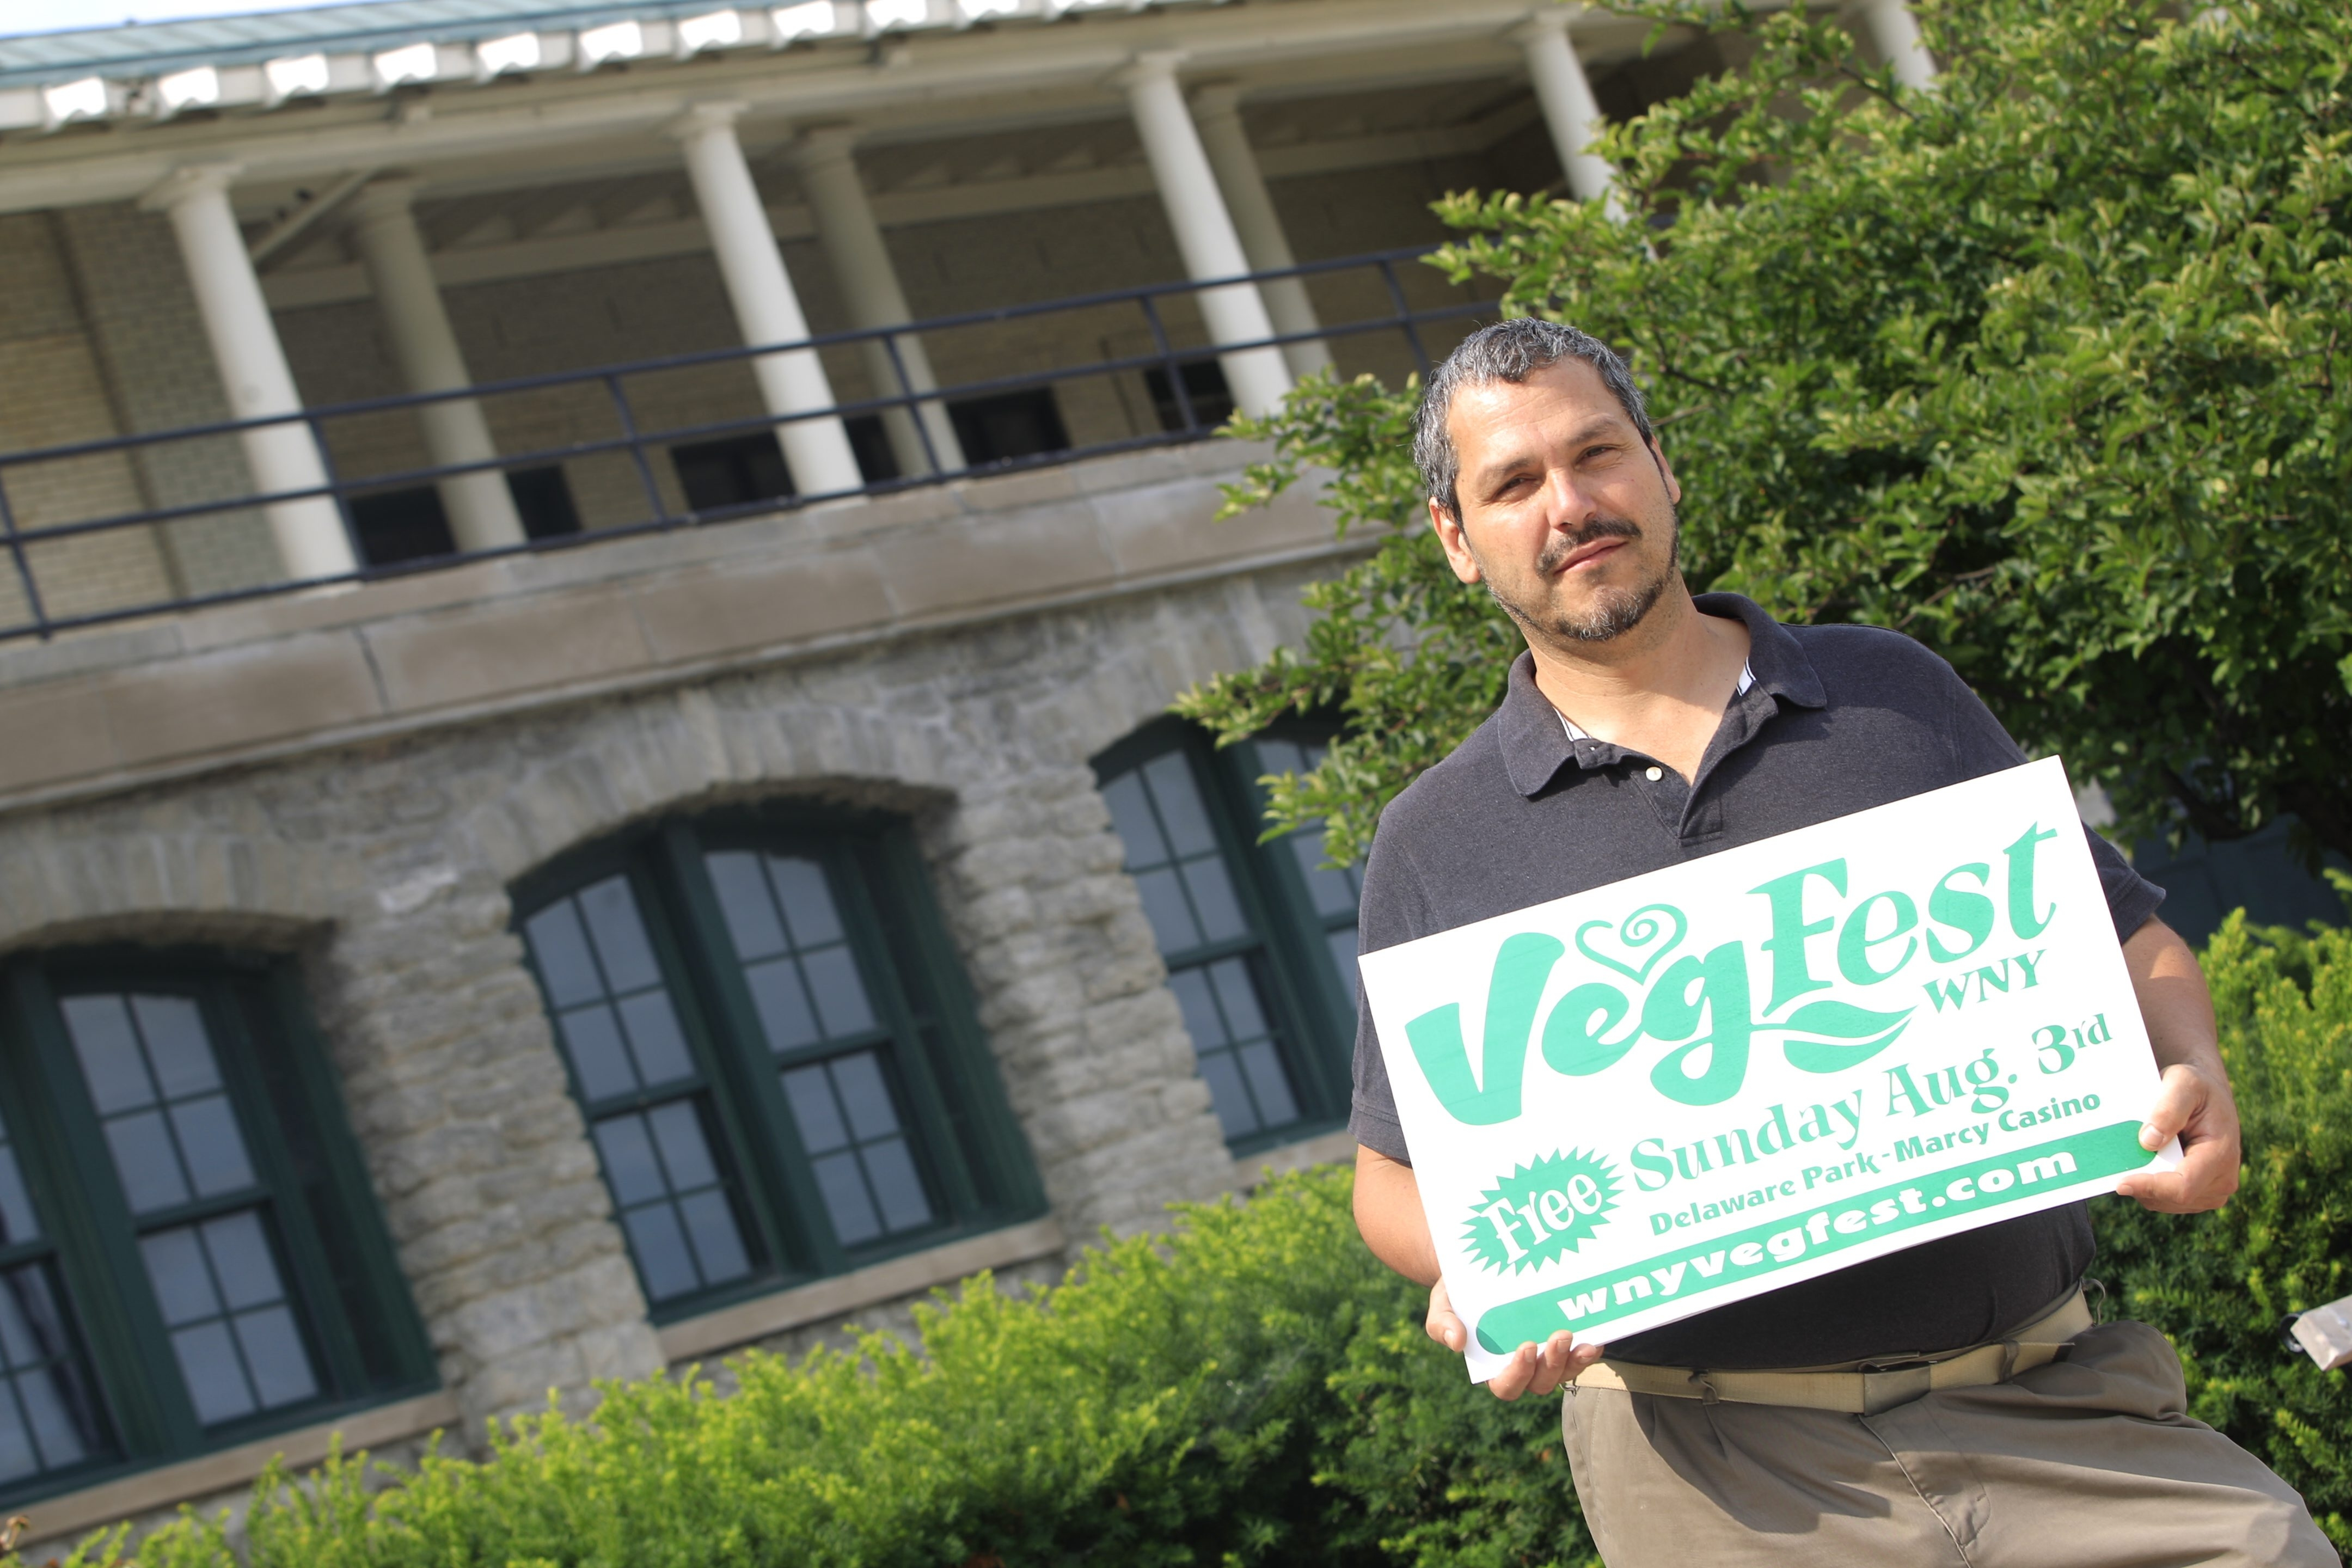 Albert Brown, founder of VegFest, looks forward to eating some tofu dishes at the festival, which takes place on Sunday.